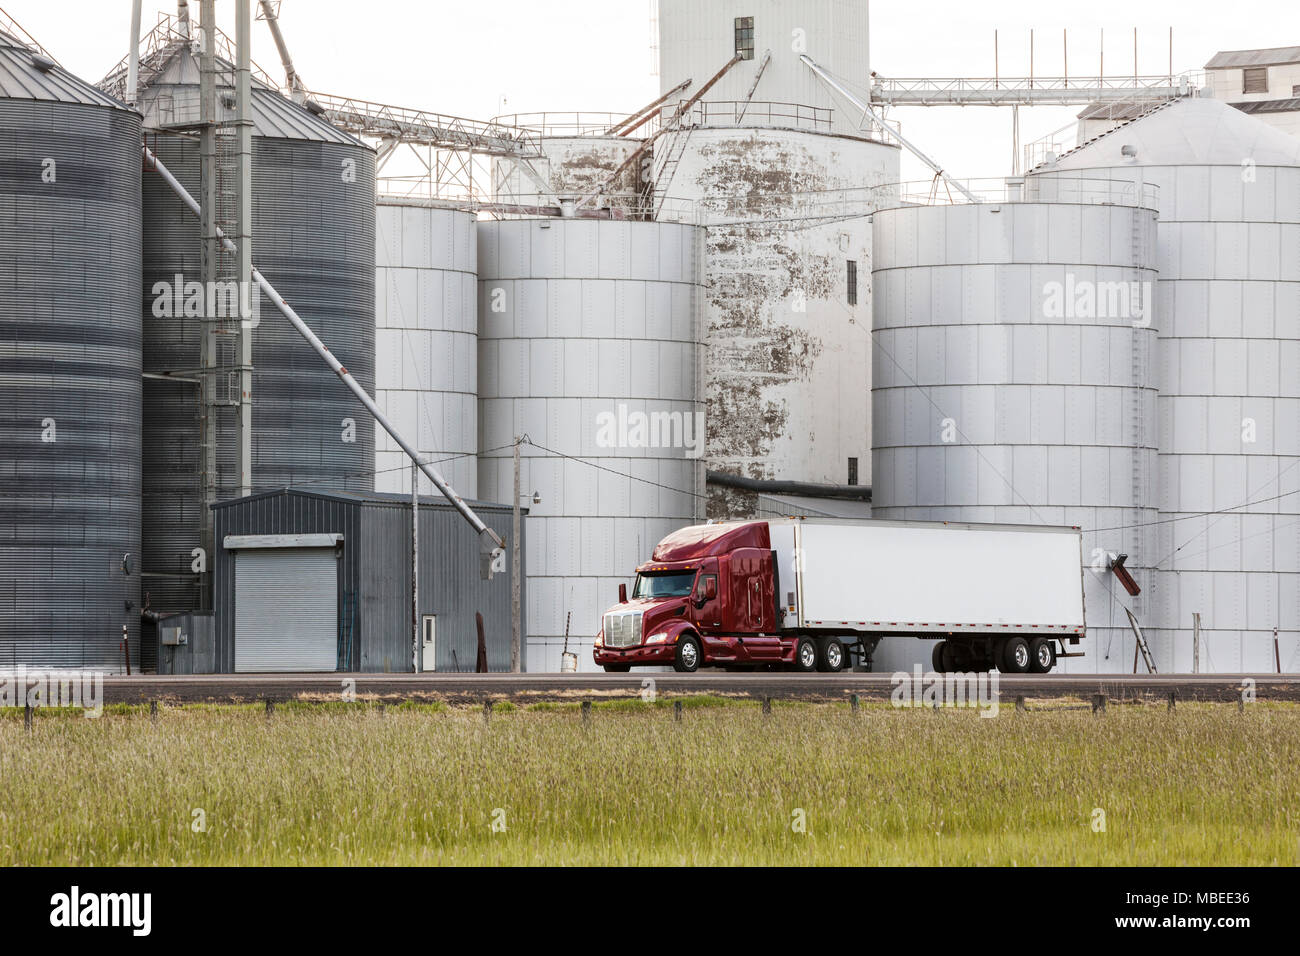 A commercial truck driving past grain elevators in the farm country of eastern Washington, USA. - Stock Image